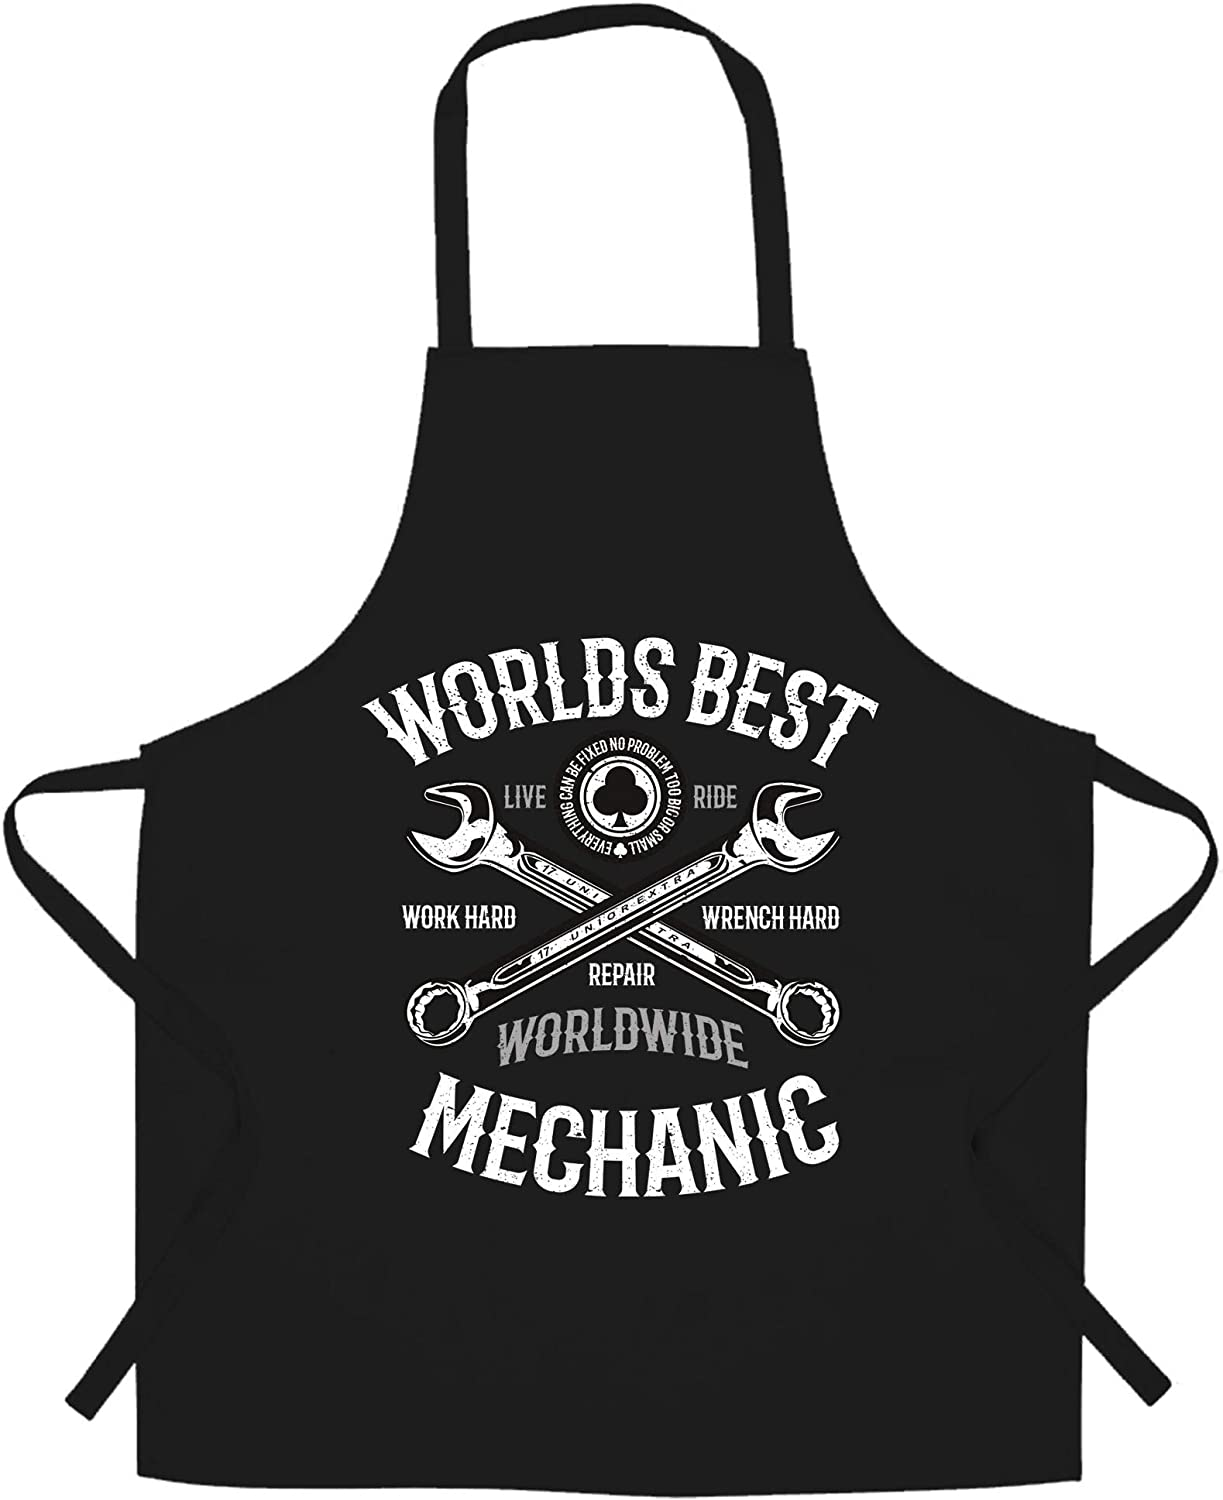 World's Best supreme Courier shipping free shipping Mechanic Chef's Apron Auto Workshop Boss Garage Job